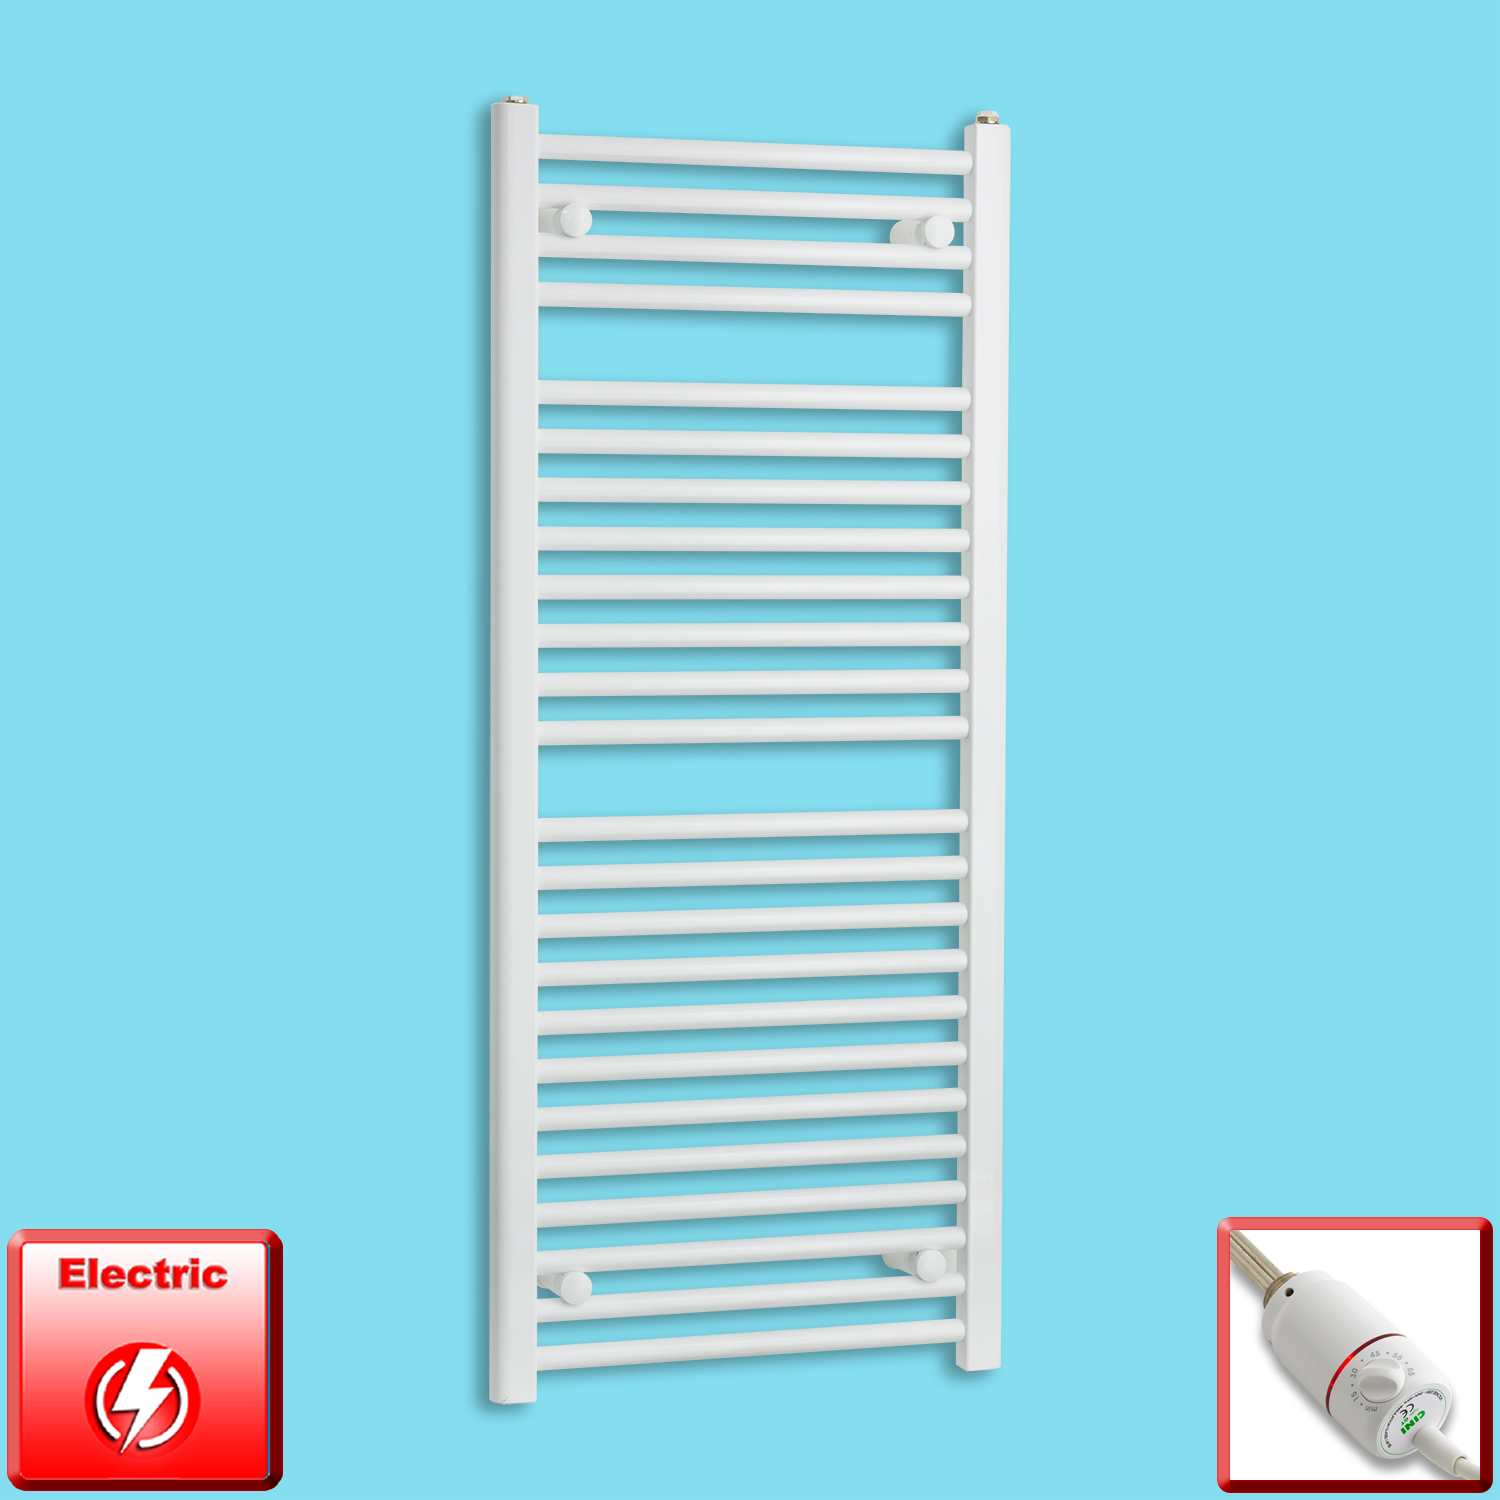 500mm Wide 1200mm High Flat White Pre-Filled Electric Heated Towel Rail Radiator HTR,GT Thermostatic